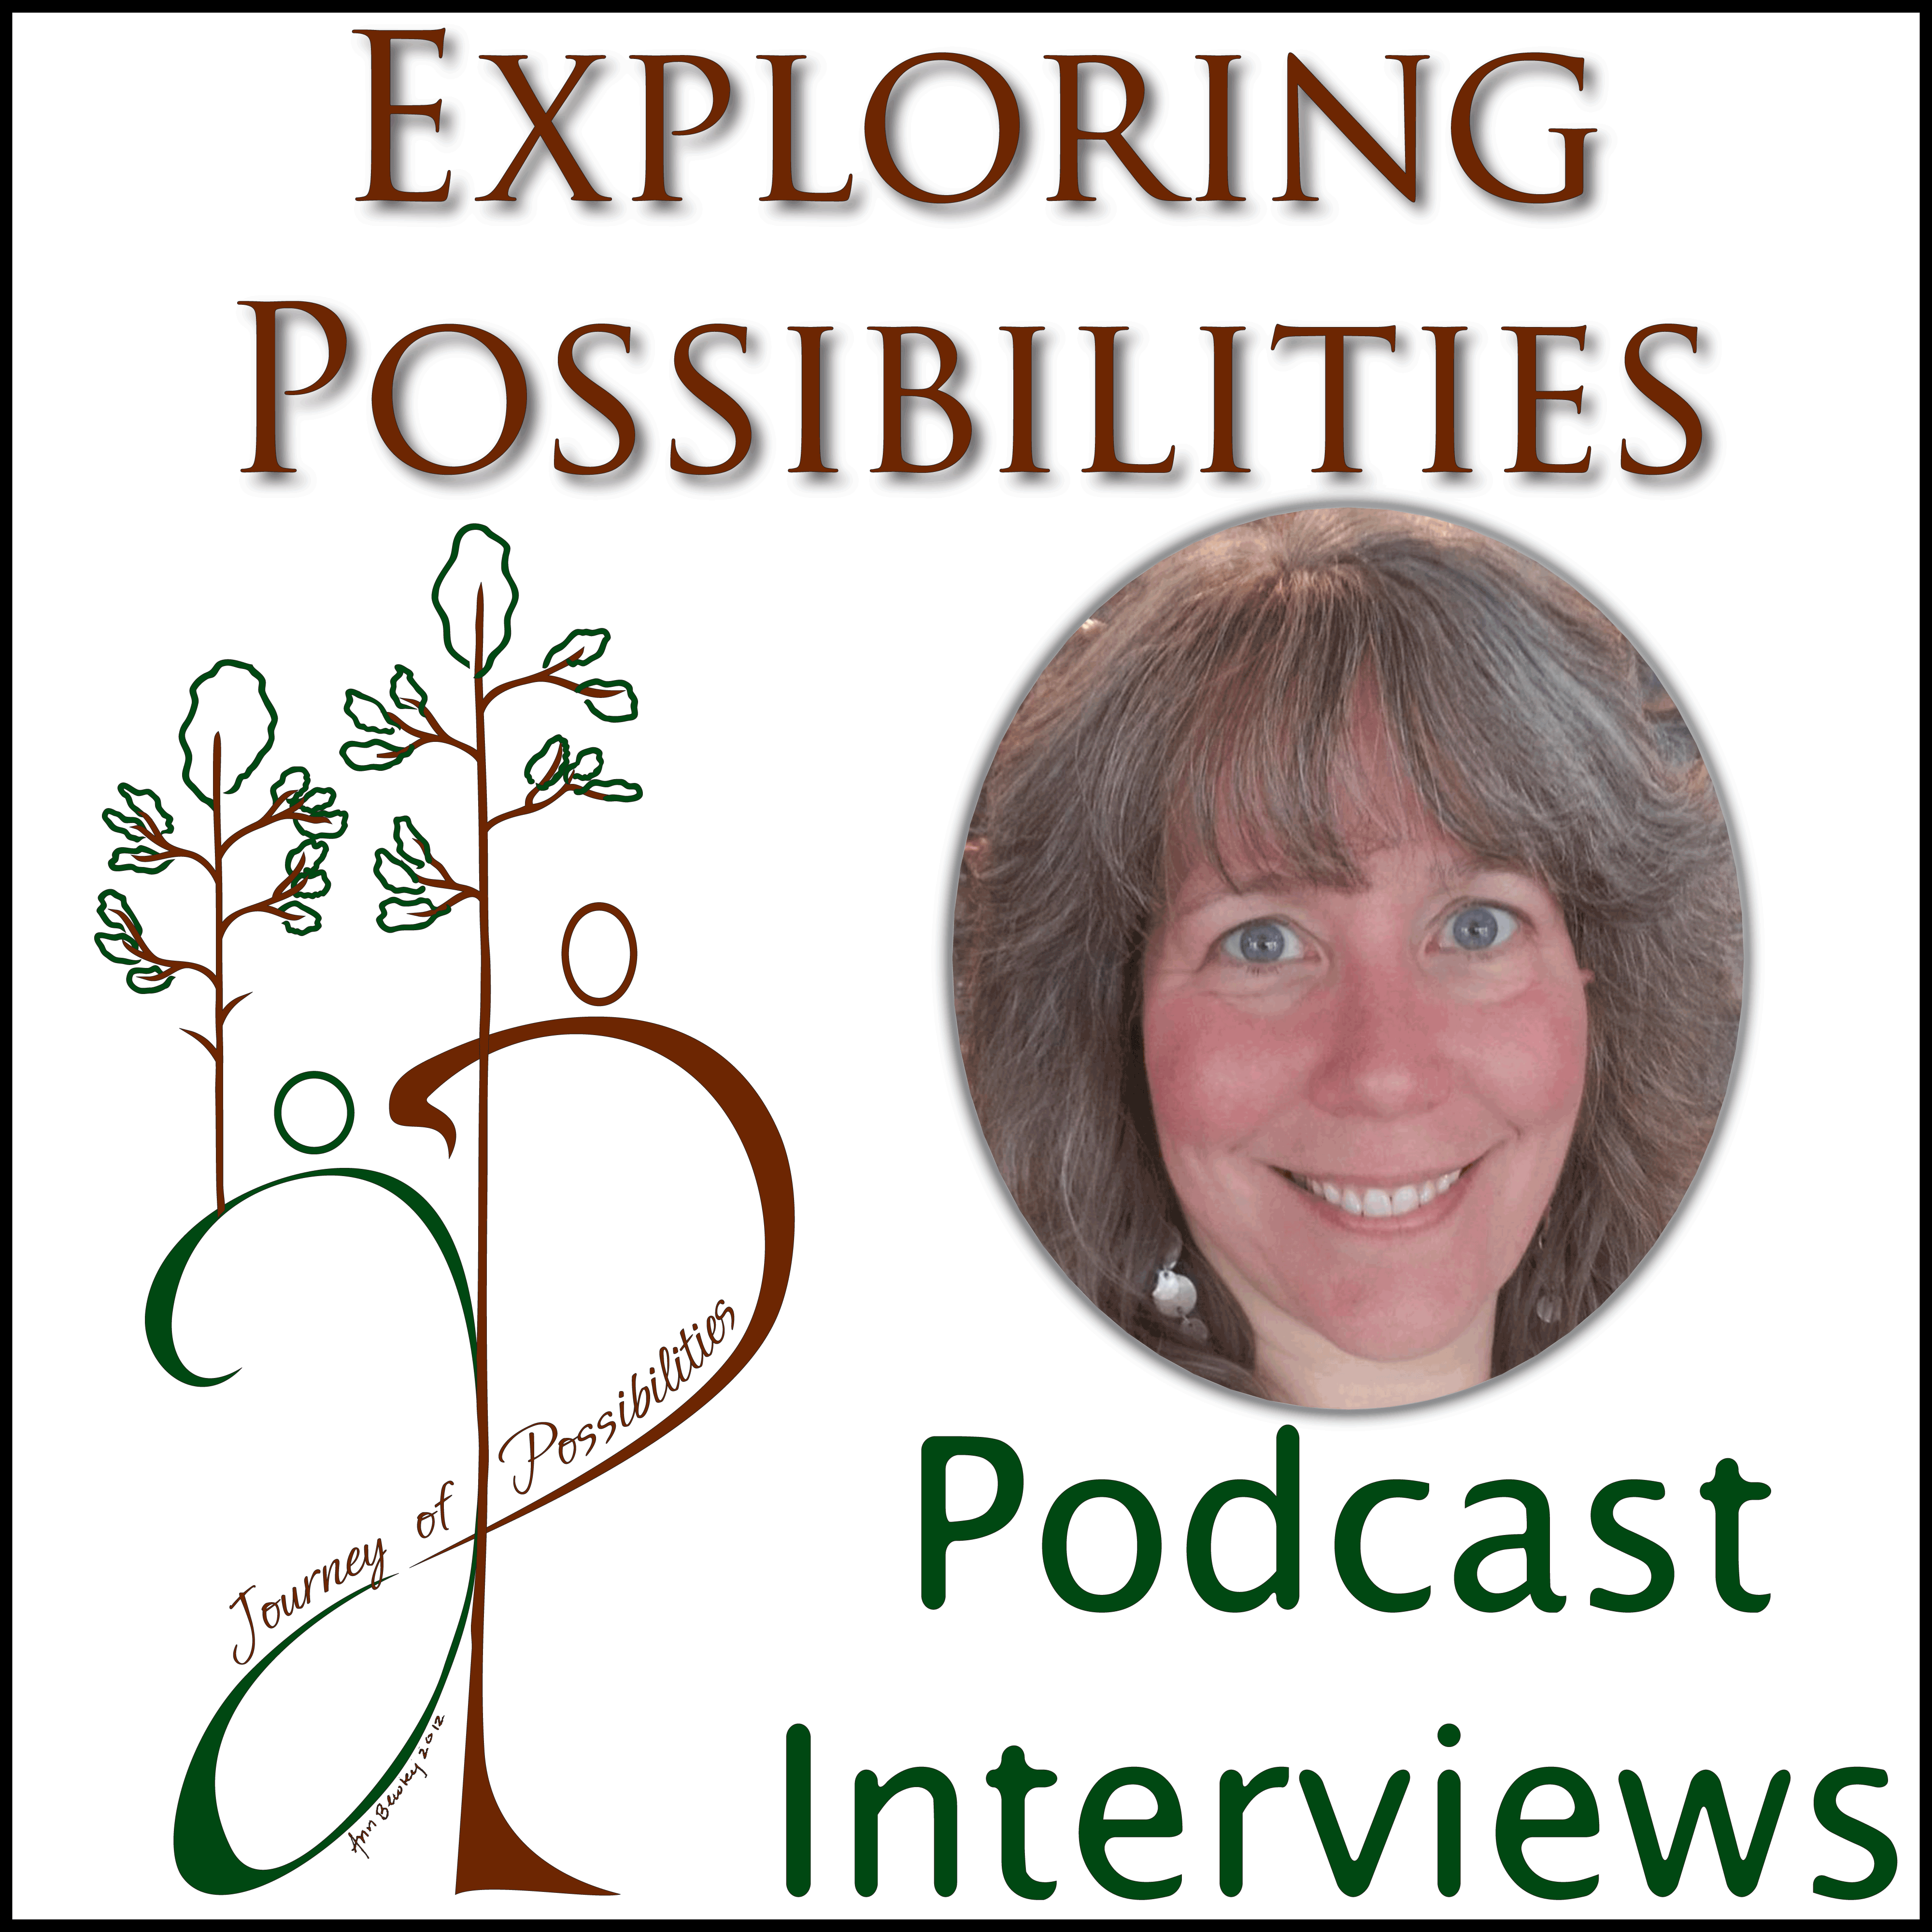 Journey of Possibilities – Holistic Wellness – Exploring Possibilities Podcast – Holistic Networks » Exploring Possibilities by Journey of Possibilities